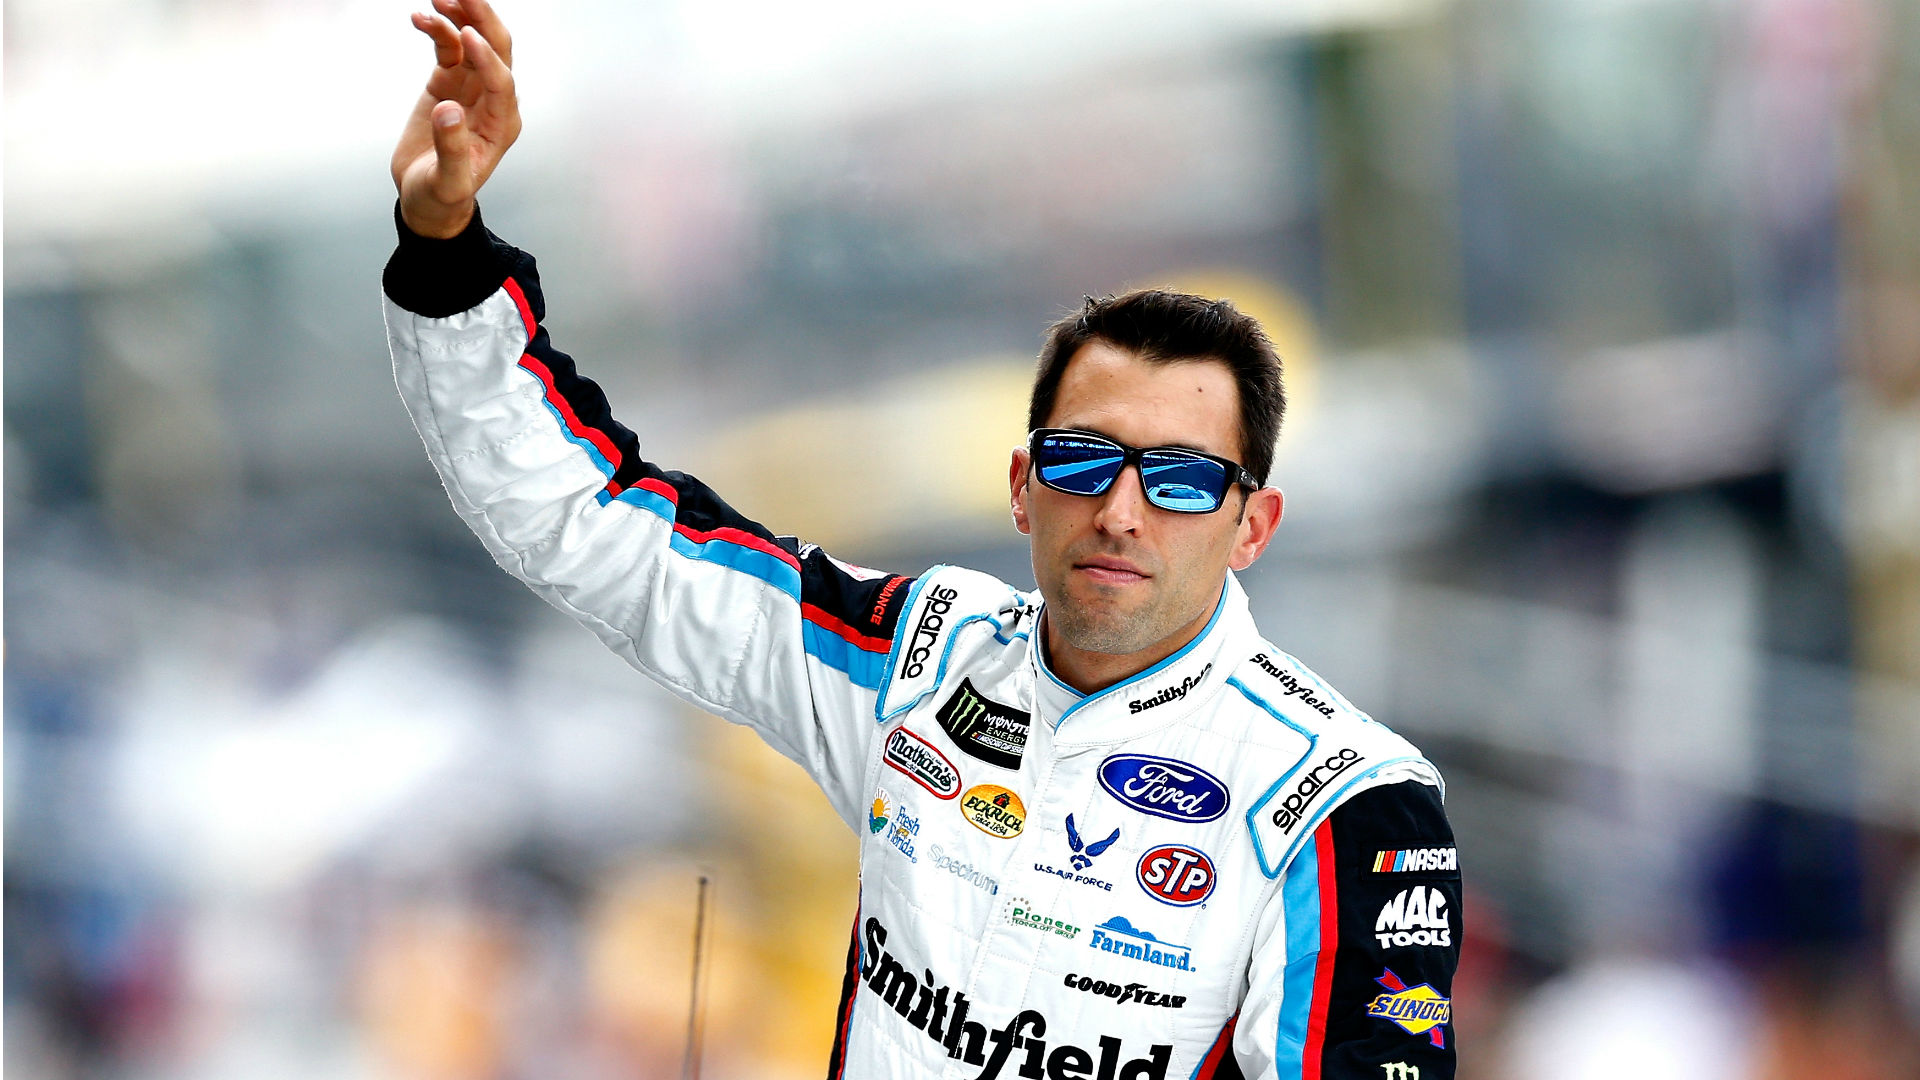 Aric Almirola to replace Danica Patrick at Stewart-Haas Racing next season, report says